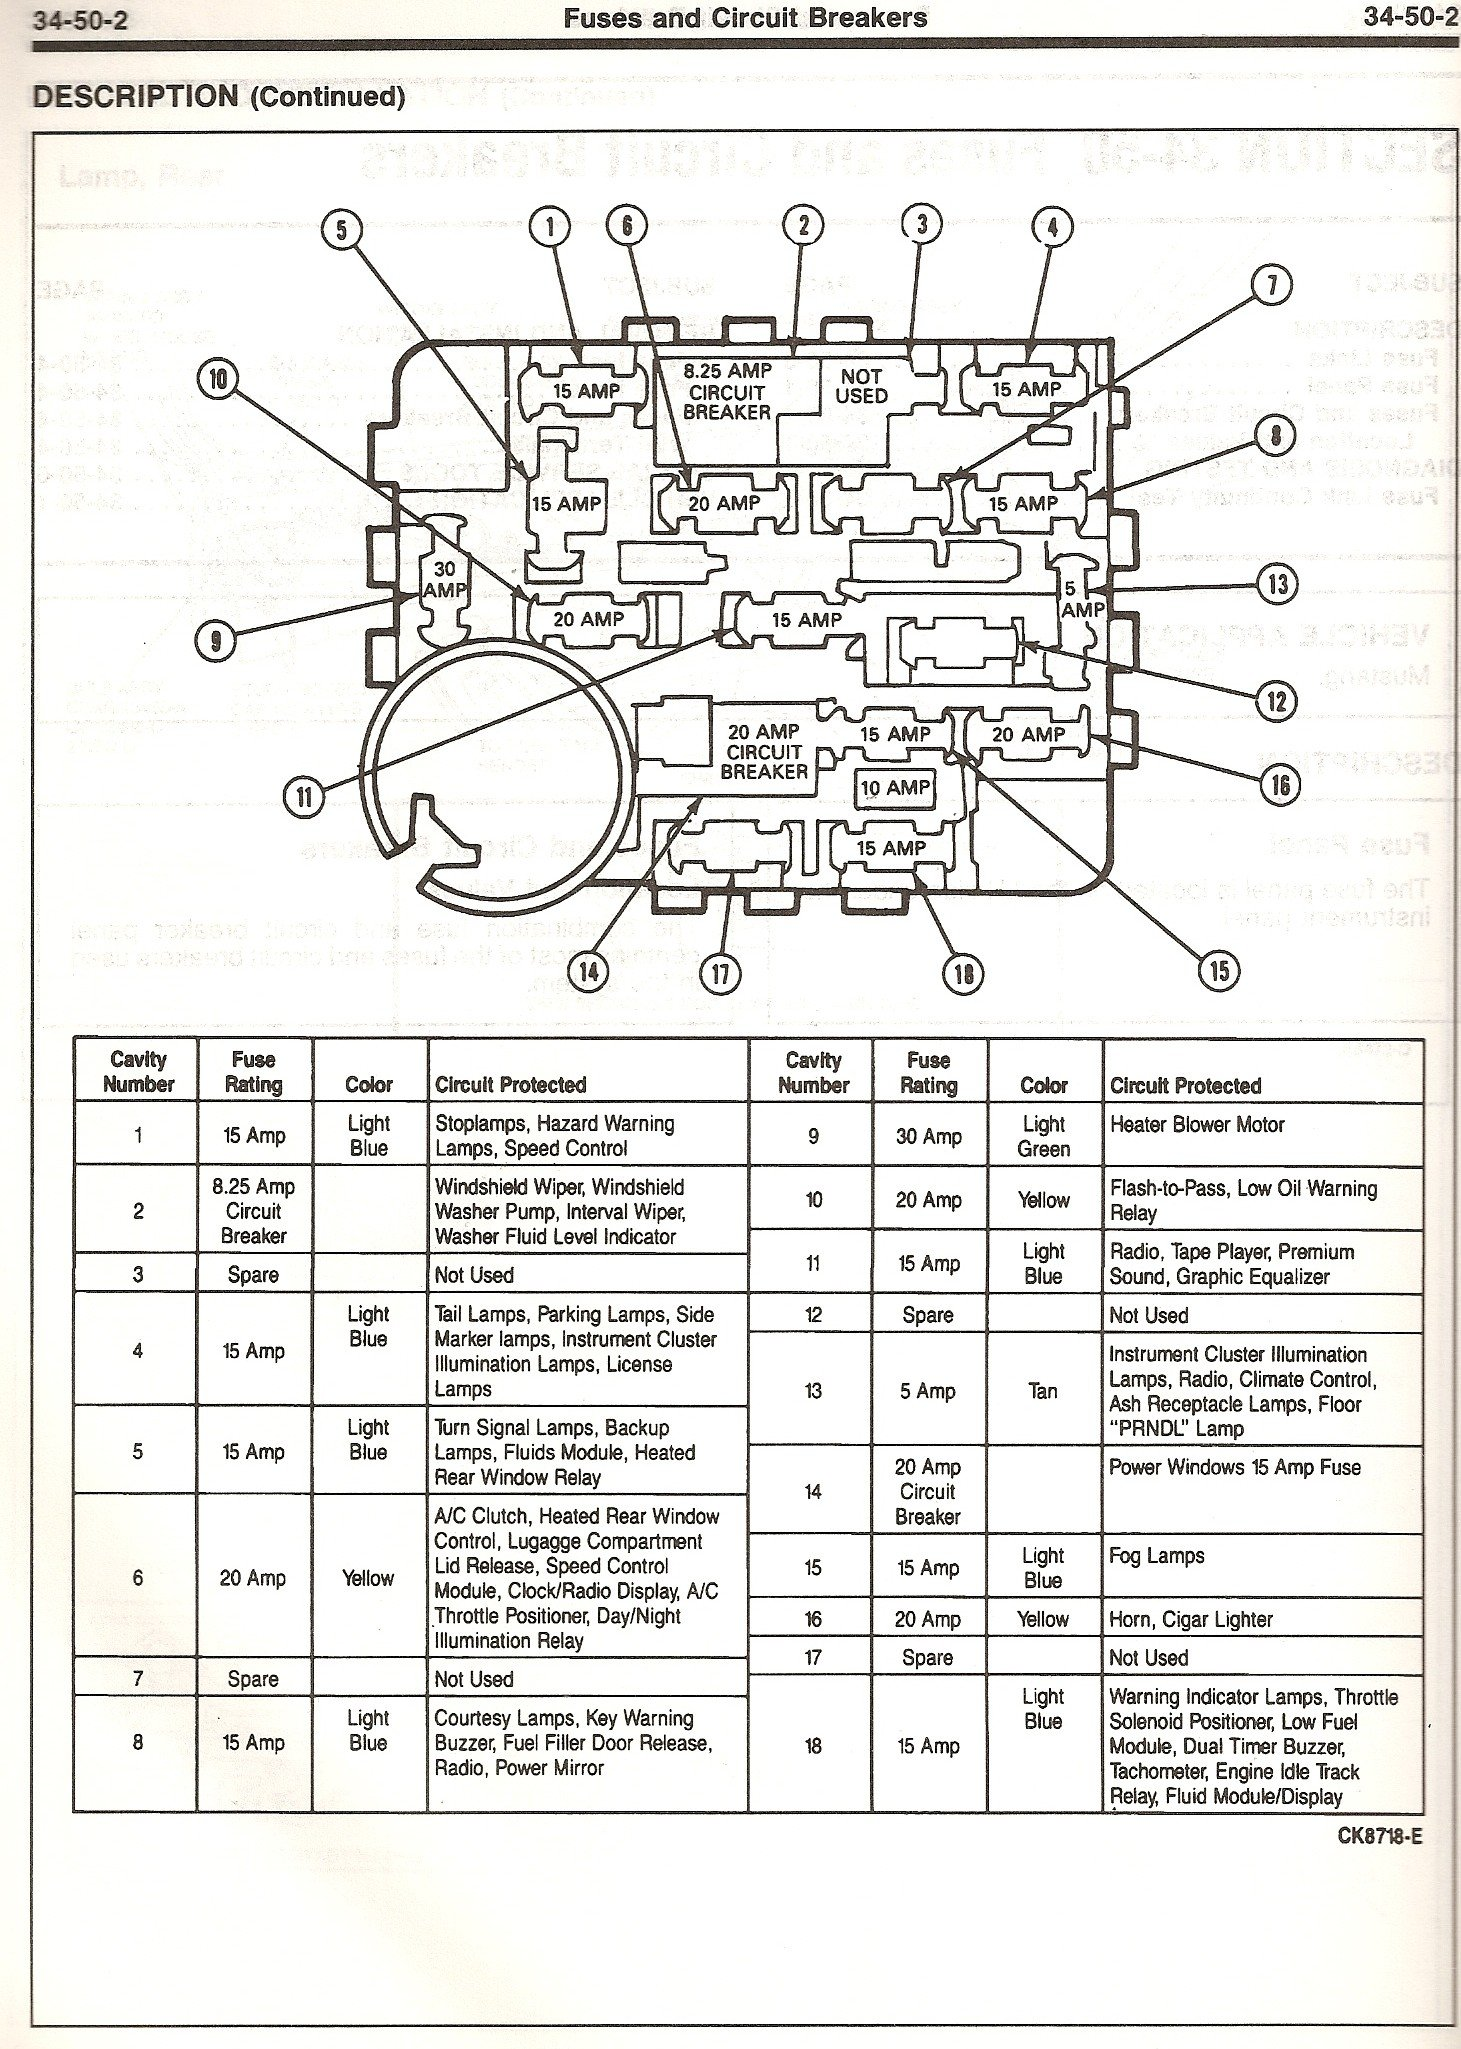 1995 mustang gt fuse box diagram